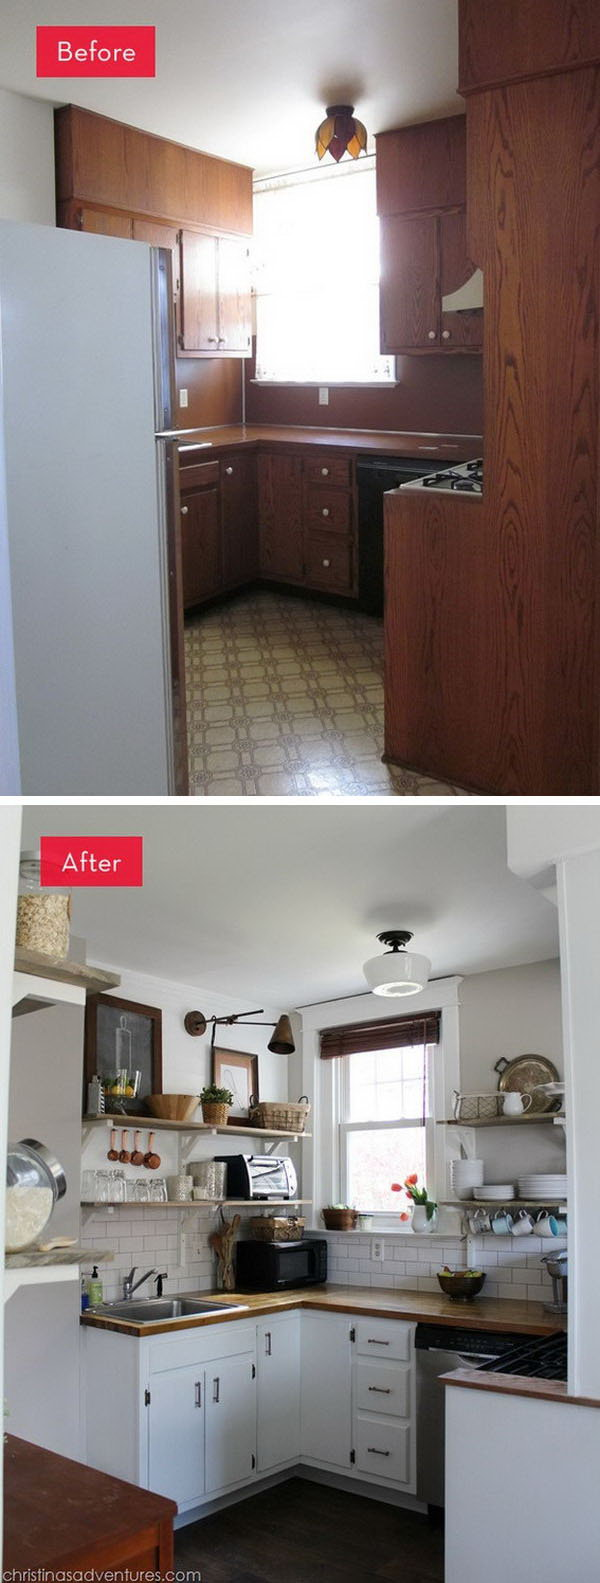 Before and After: A Dark Kitchen Gets A Refreshing New Look. What an amazing improvement. This kitchen was dark and dingy with the brown cabinets and backsplash. But now it's light-filled, airy and inviting.